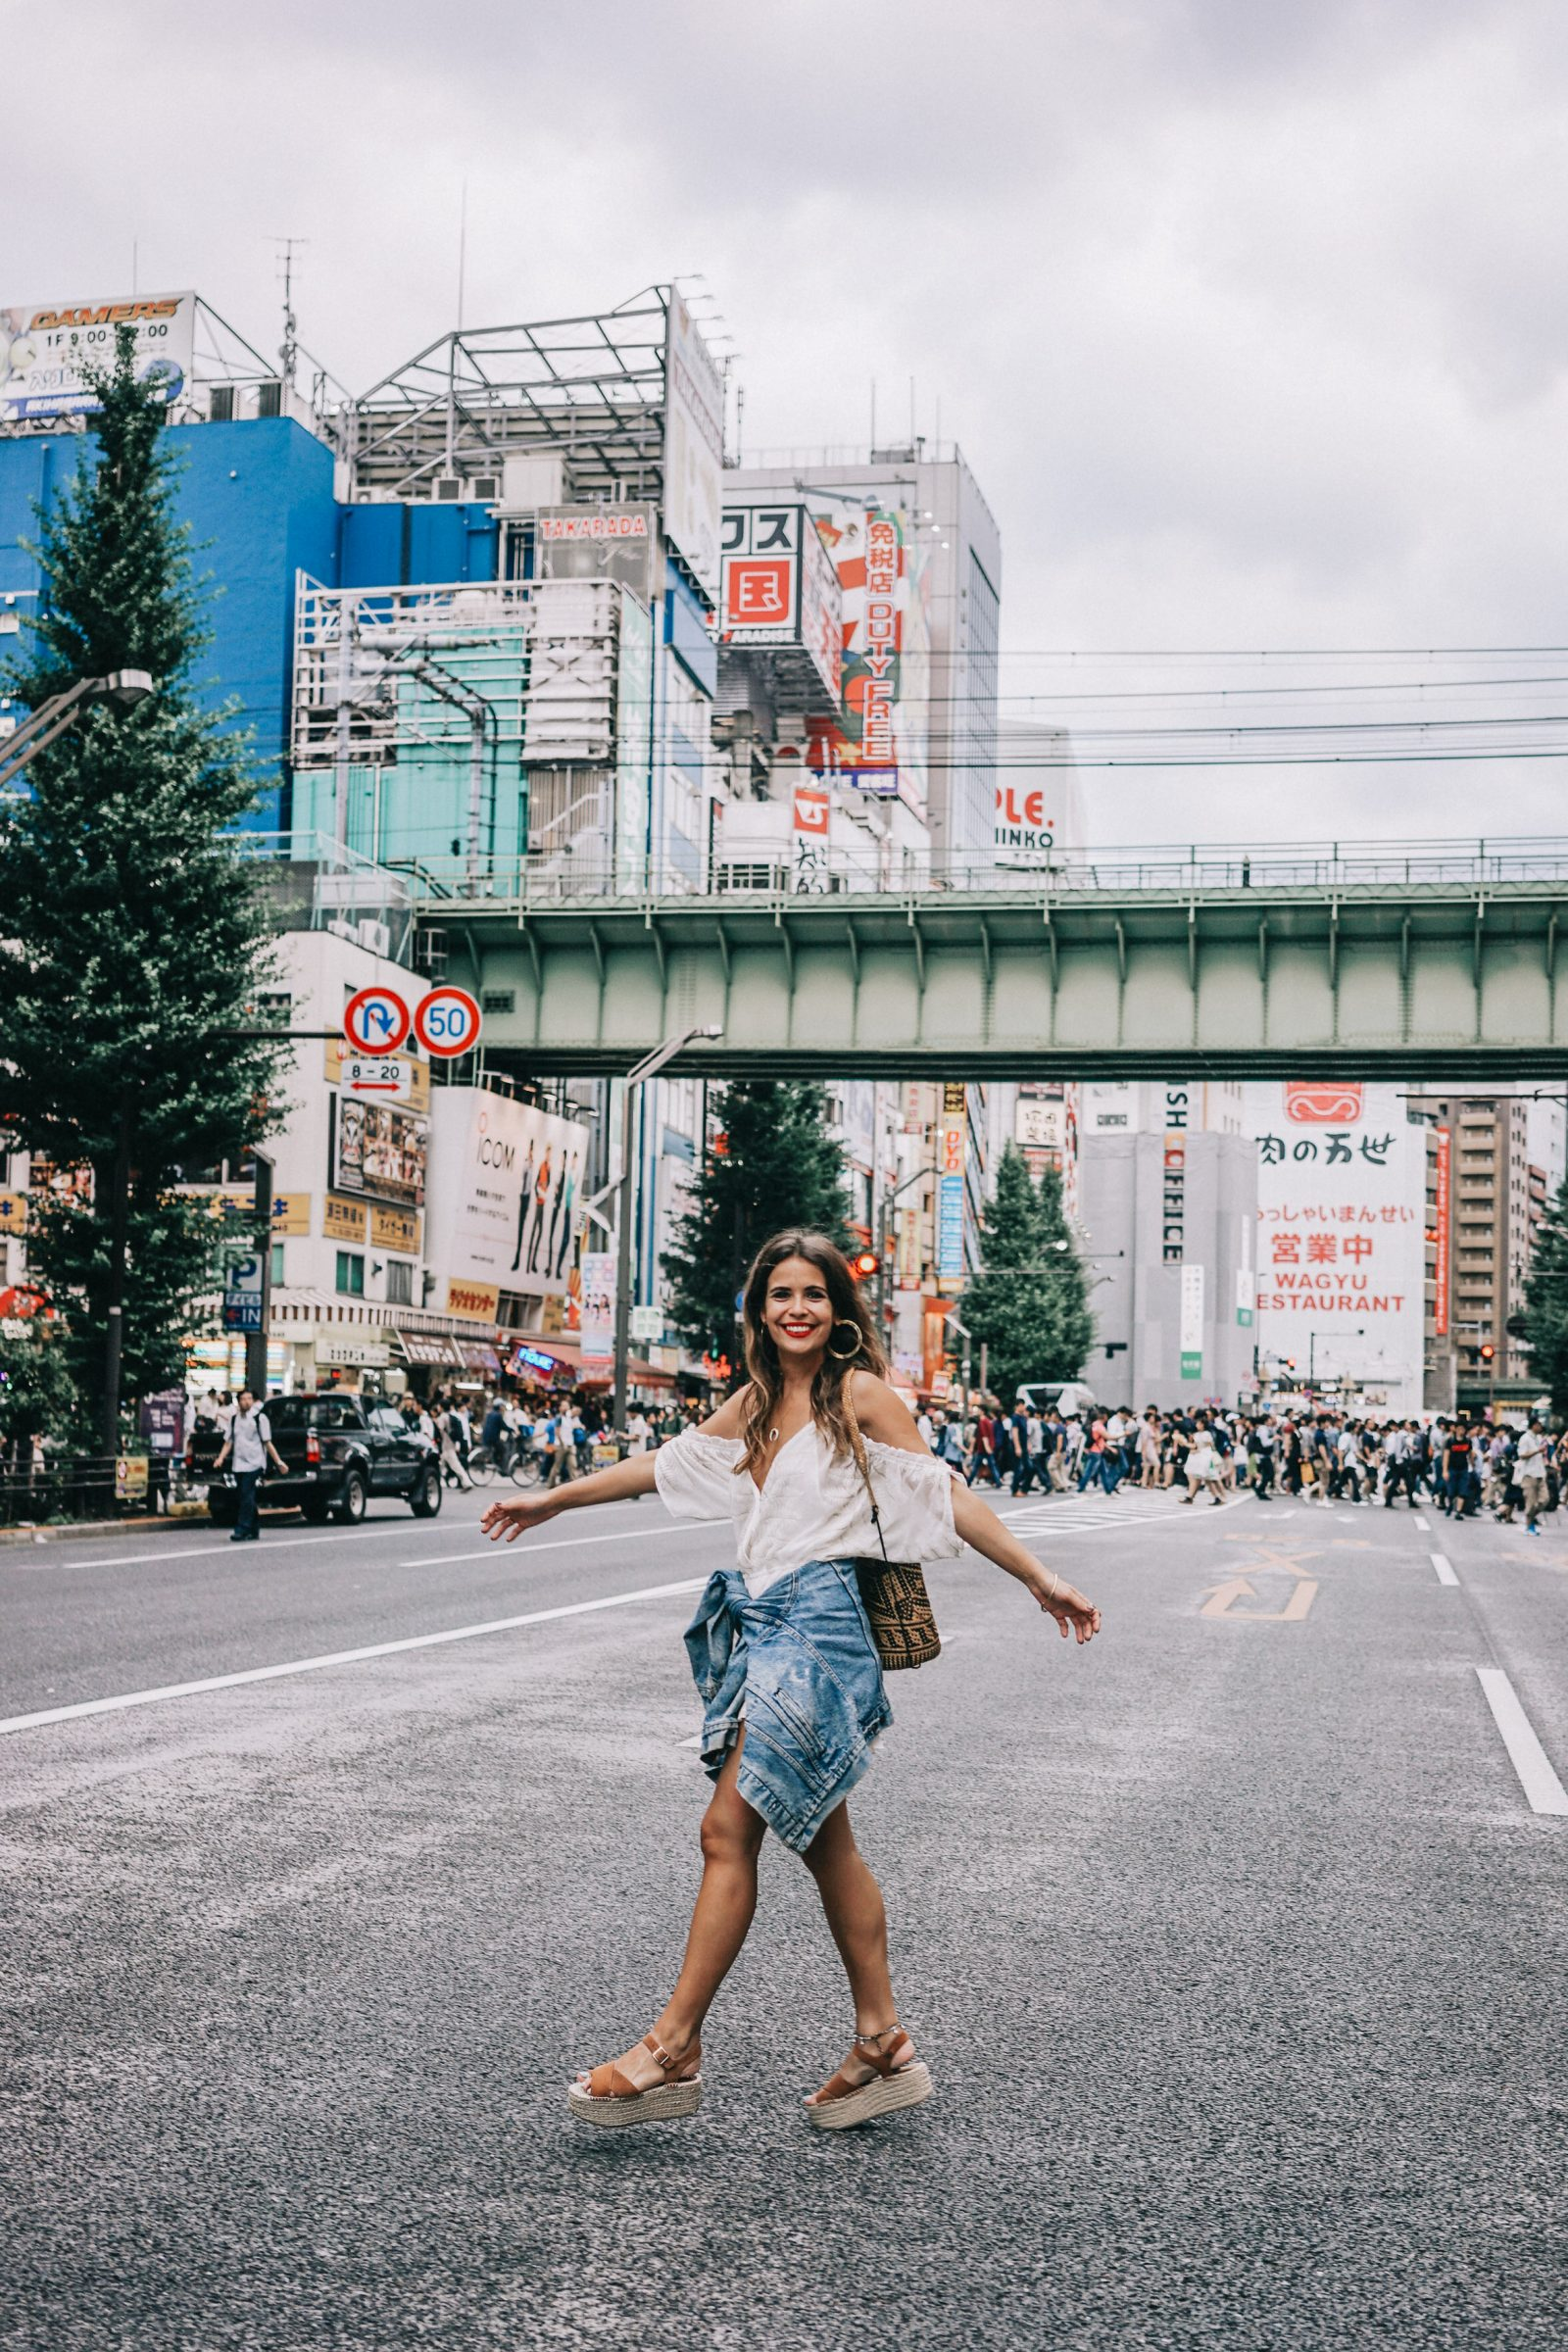 tokyo_travel_guide-outfit-collage_vintage-street_style-lovers_and_friends_jumpsuit-white_outfit-espadrilles-backpack-levis_denim_jacket-akihabara-121